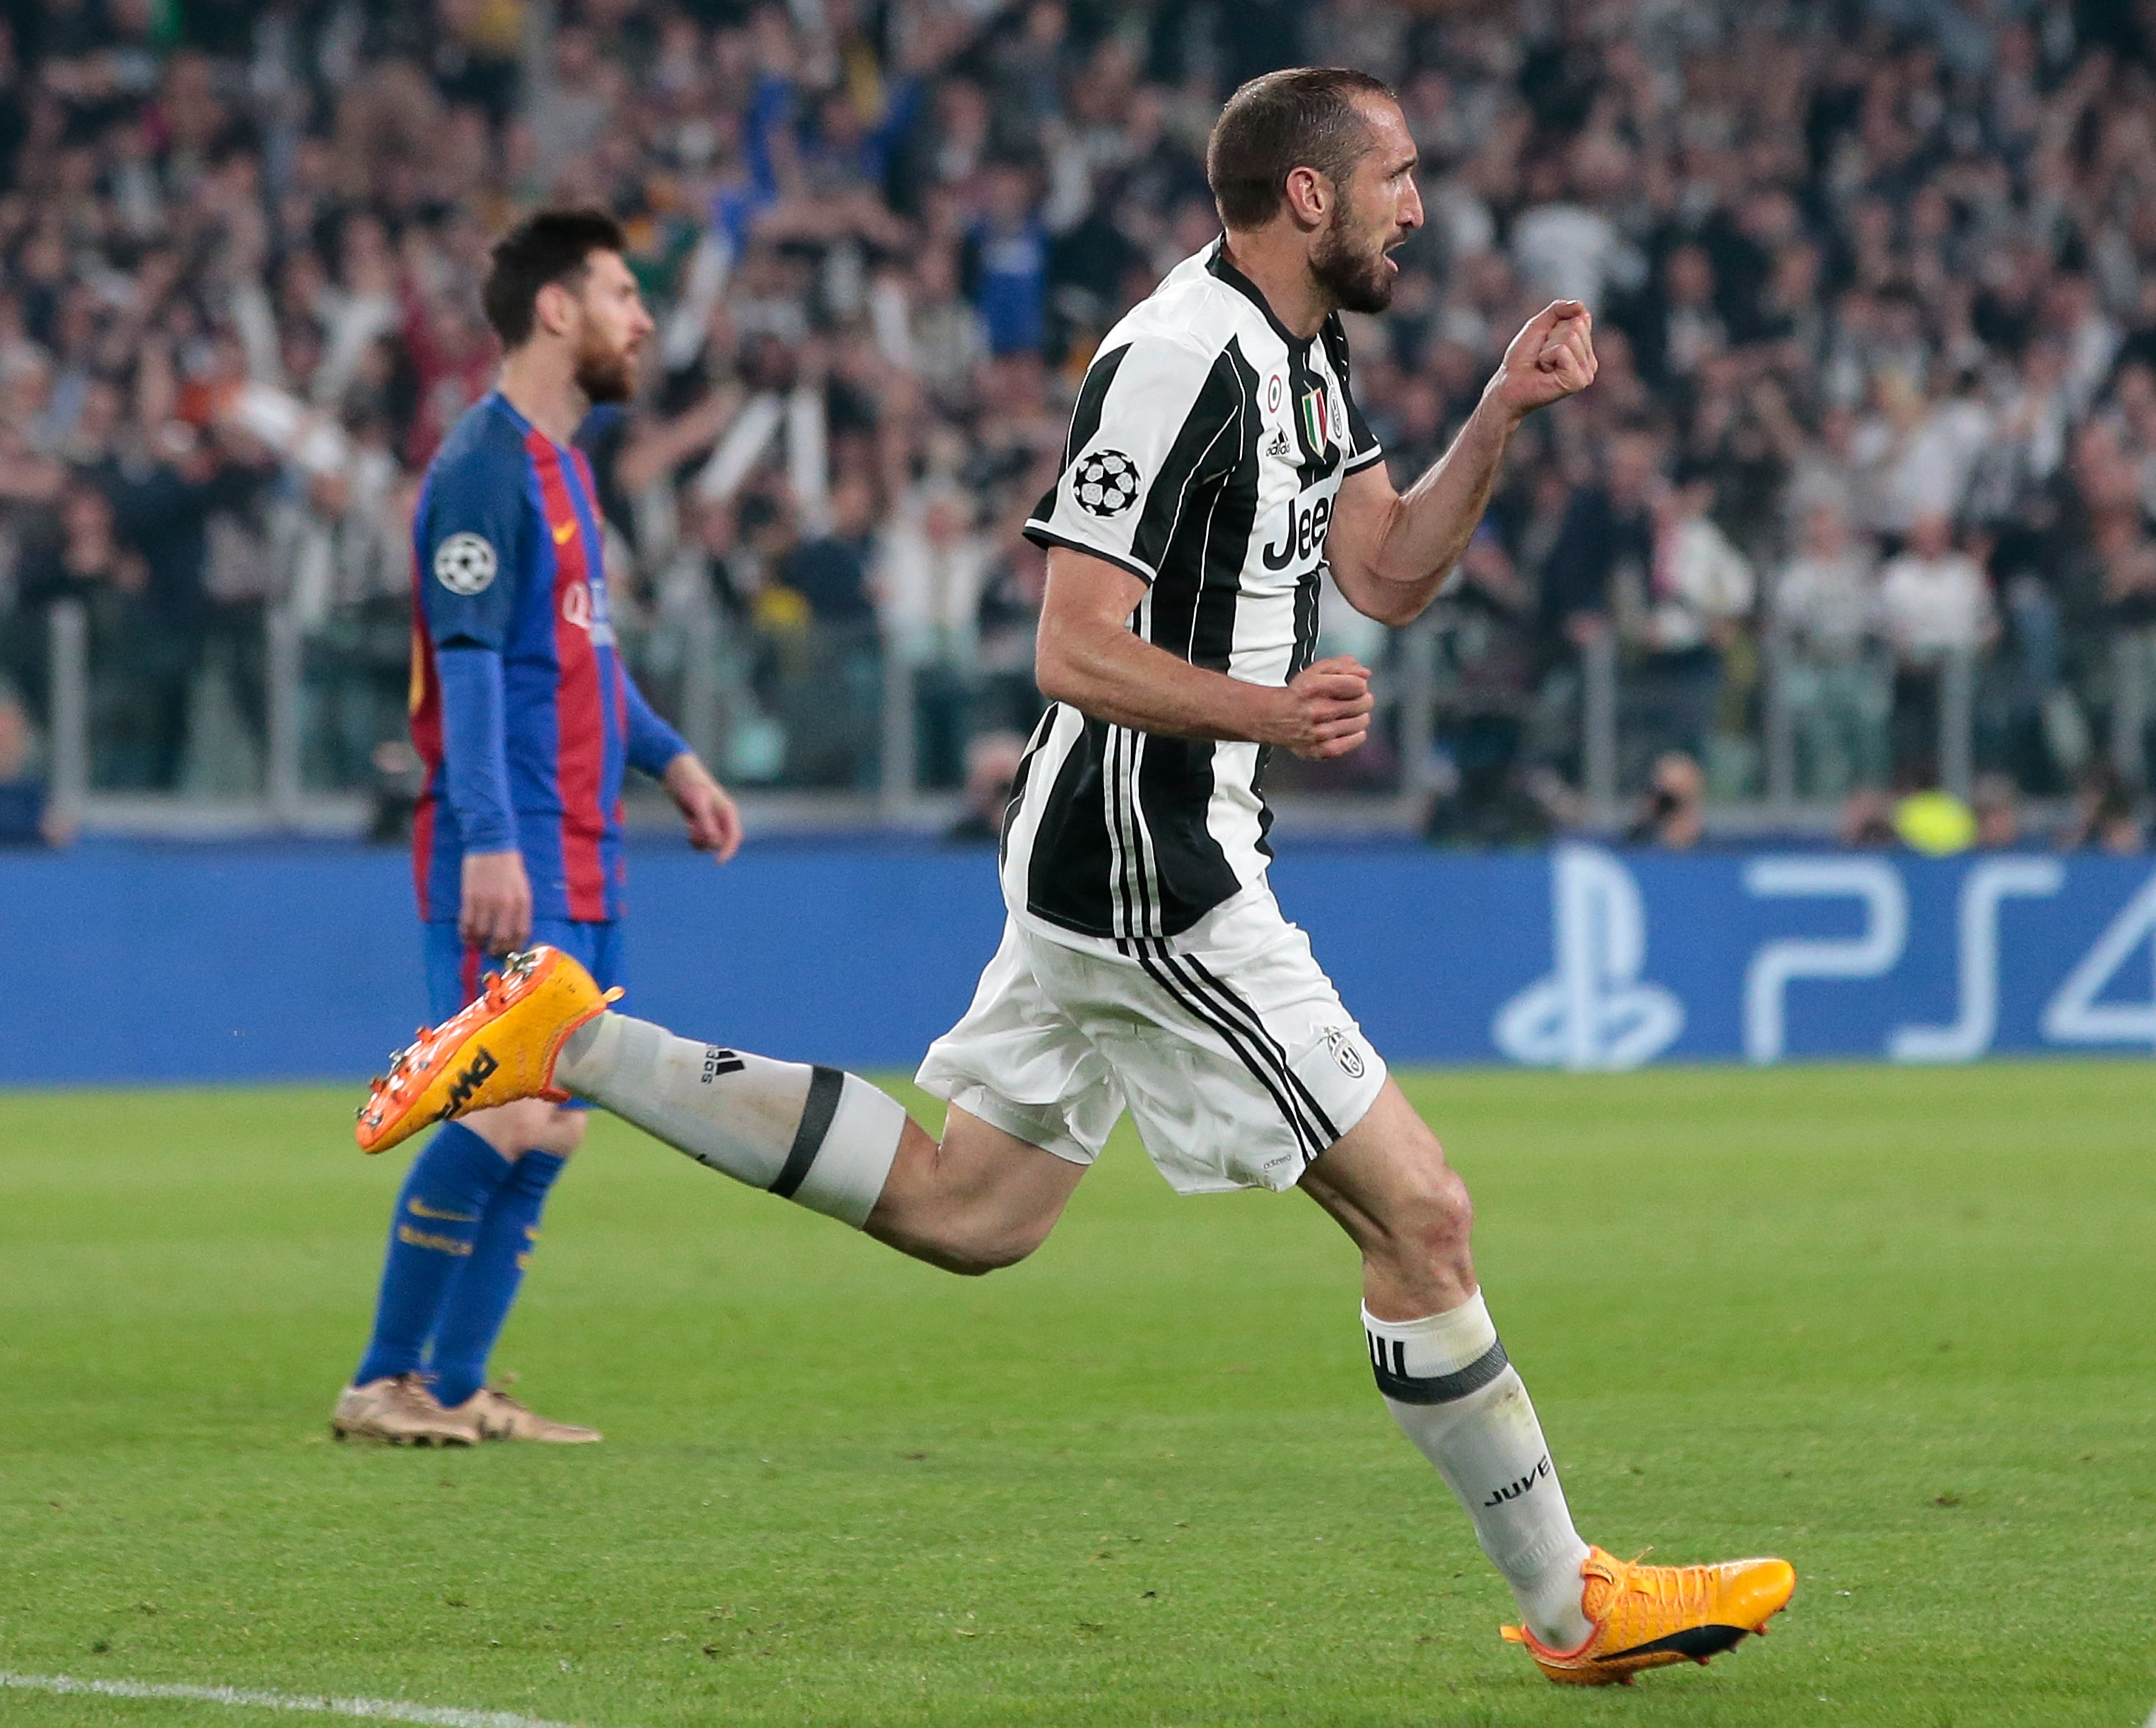 Barcelona face uphill battle to qualify after Paulo Dybala inspires Juventus